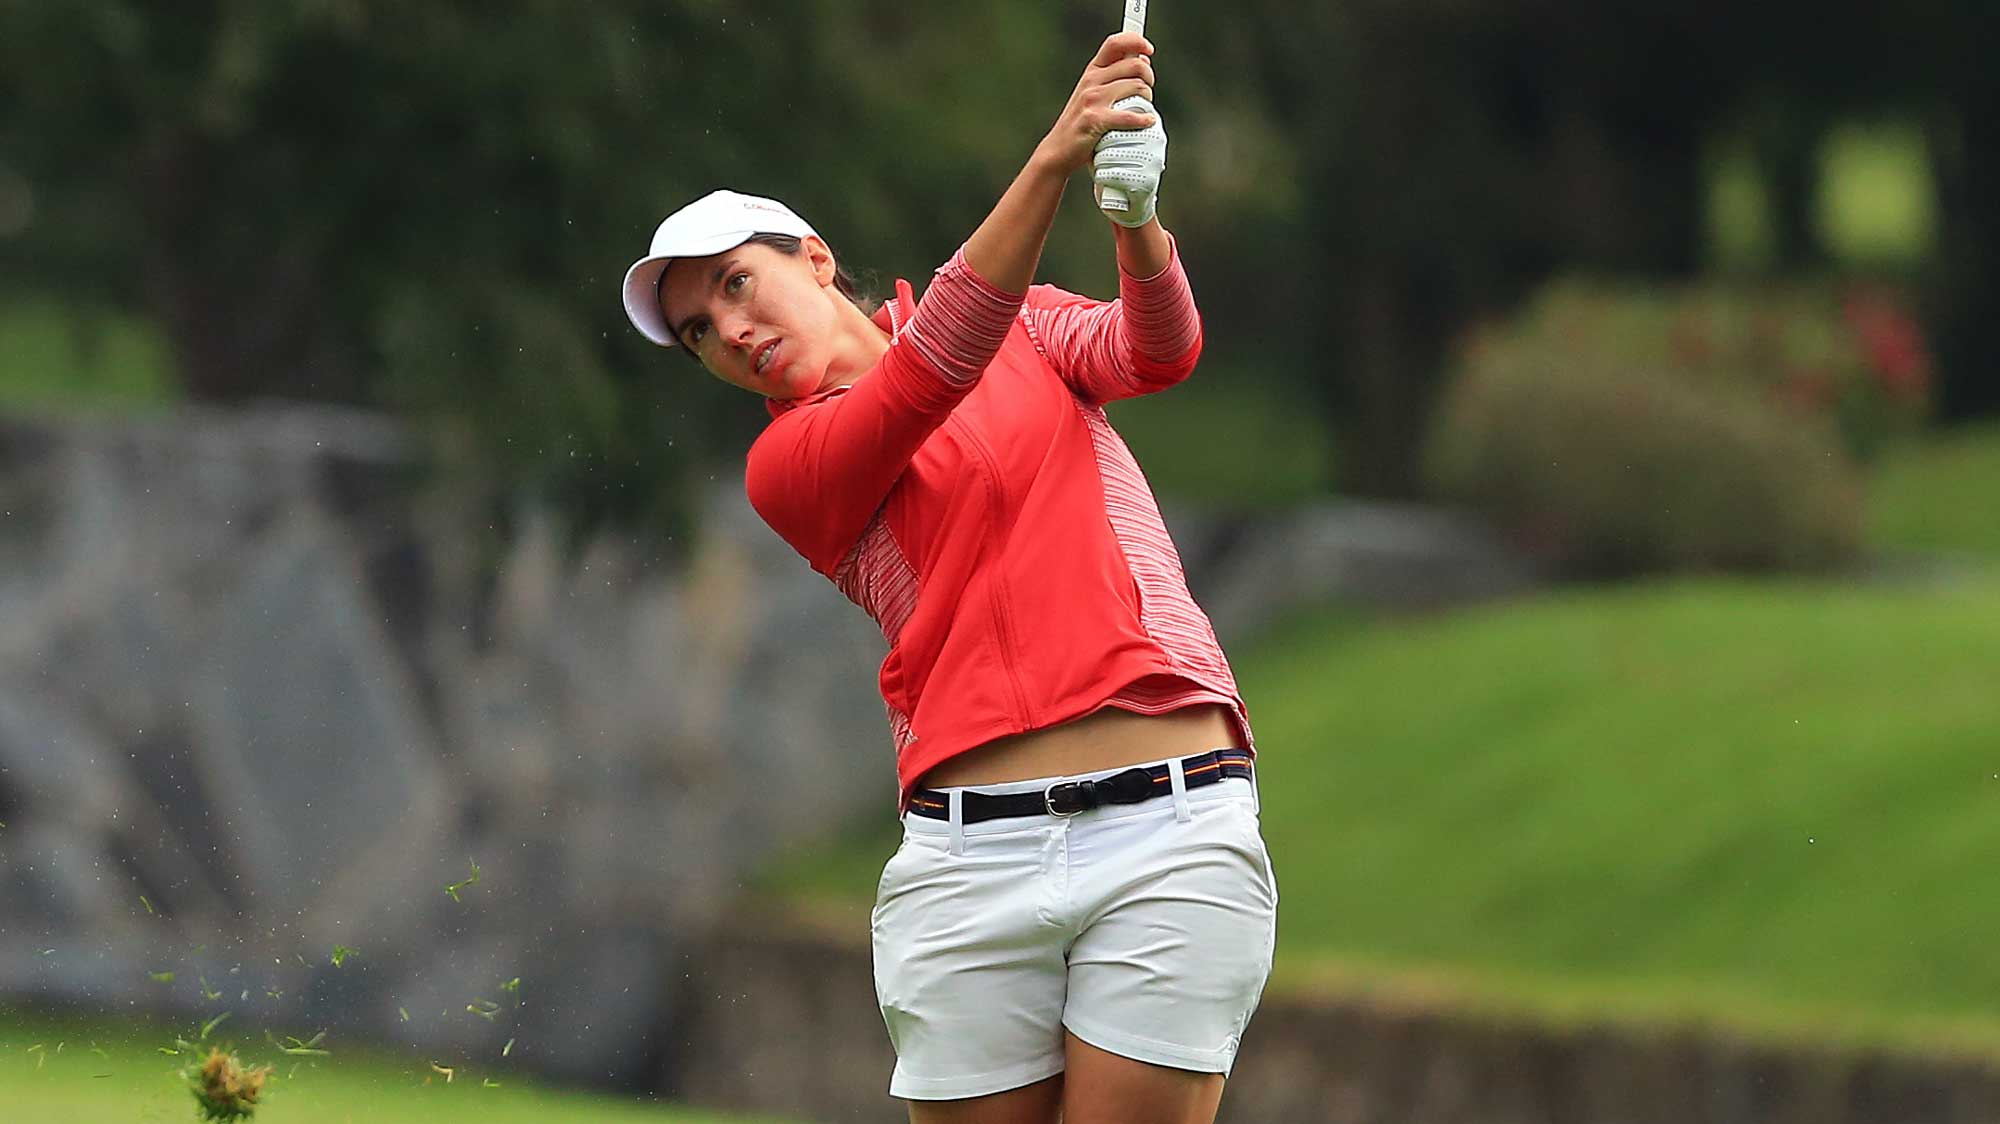 Lorena Ochoa Invitational: England's Ewart Shadoff second in Mexico City